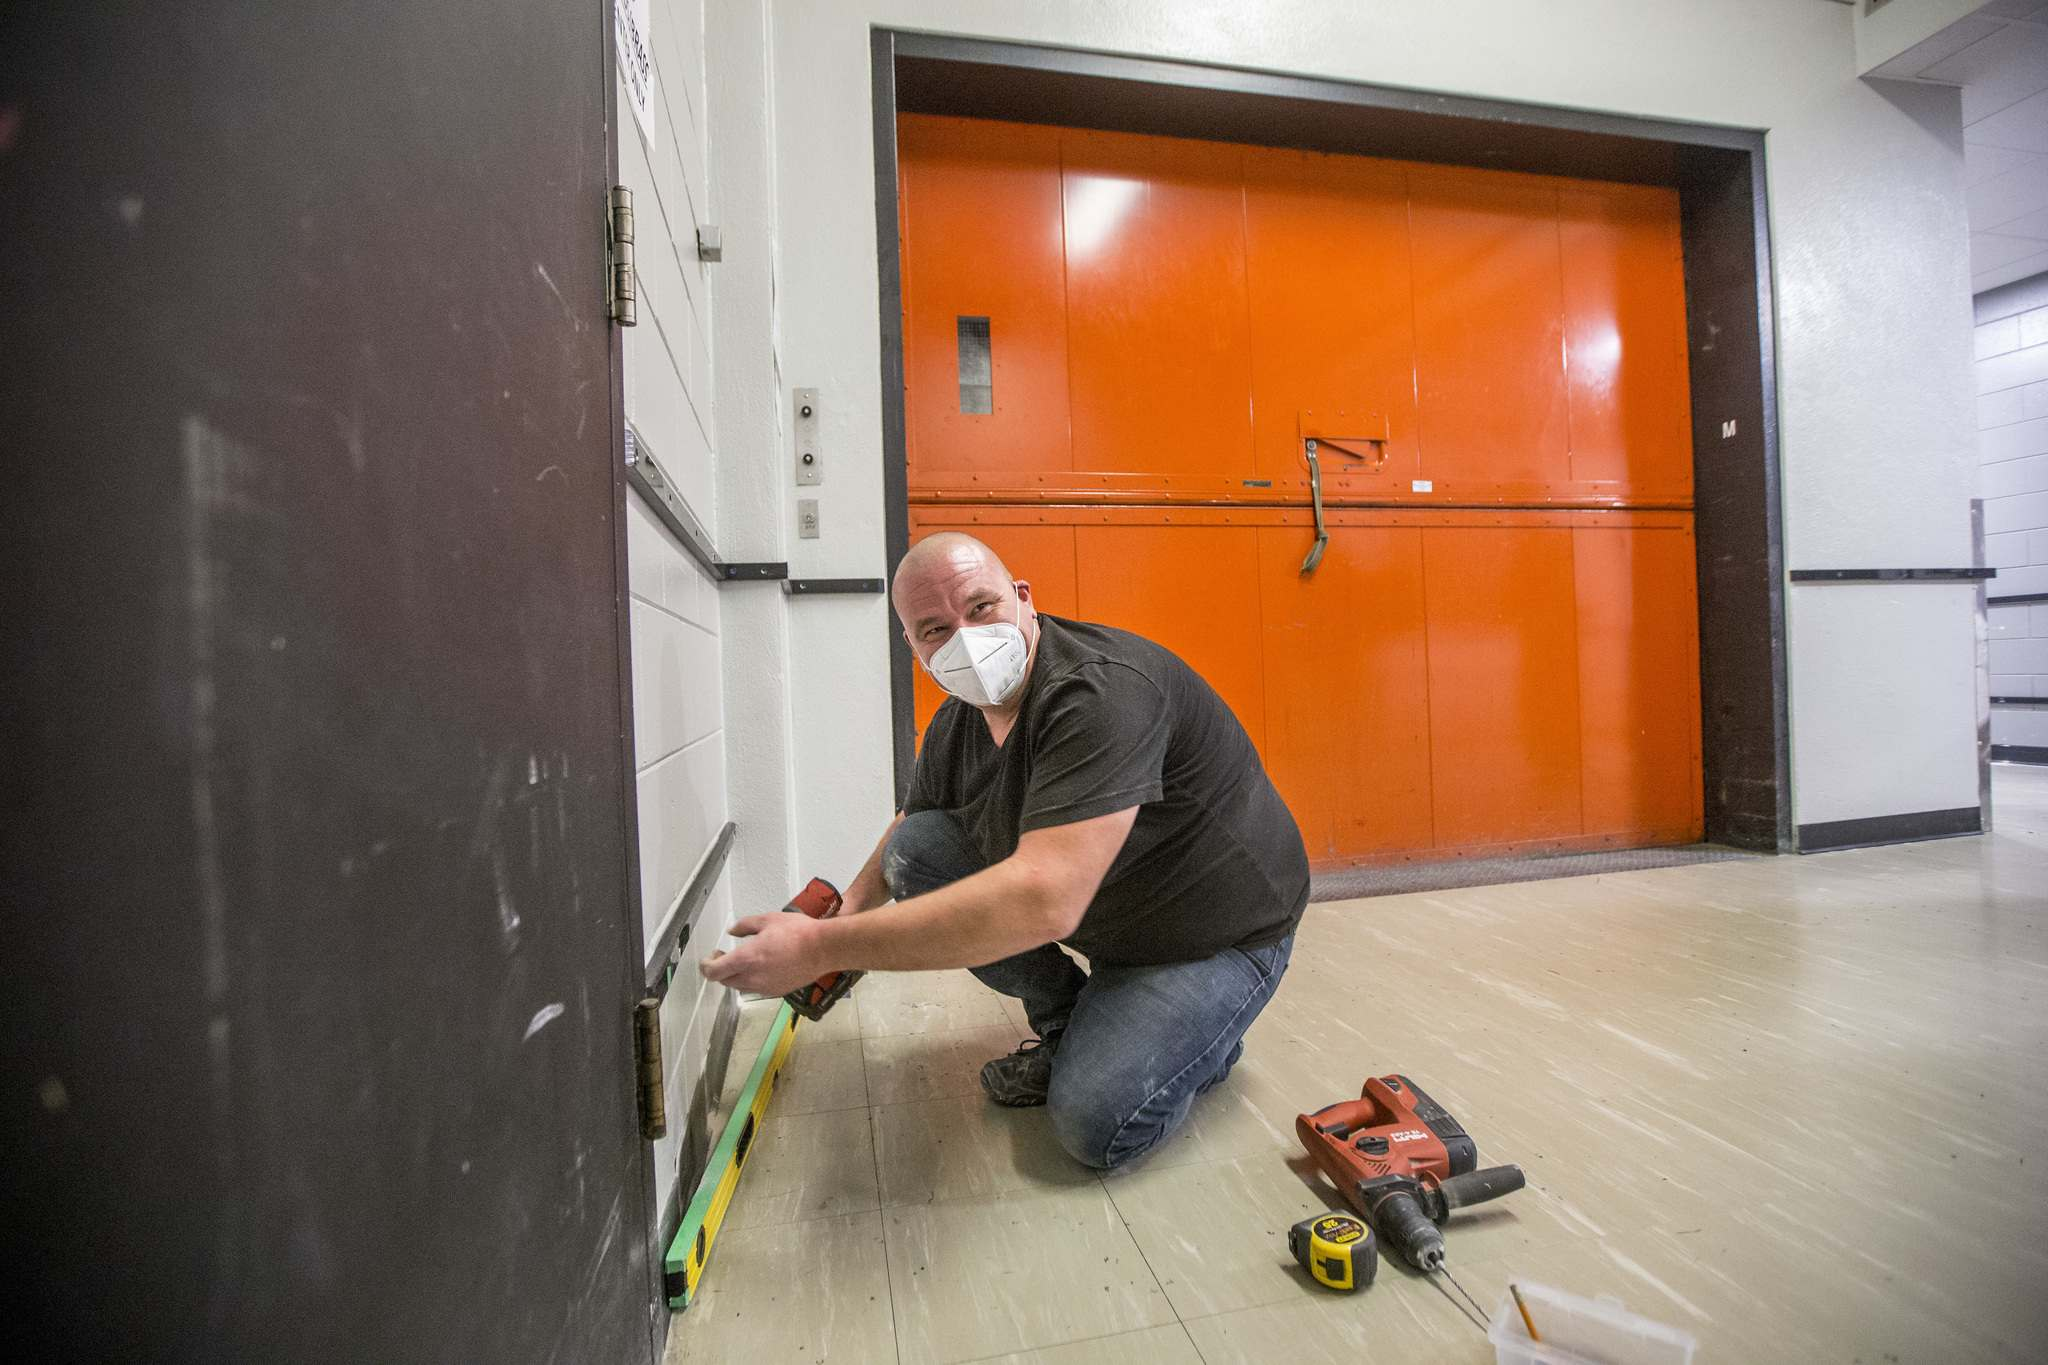 Vince Paulich, facility services supervisor, puts up bumper strips along hallway walls to protect against damage from tour cases being moved from the loading dock. (Mikaela MacKenzie / Winnipeg Free Press)</p>